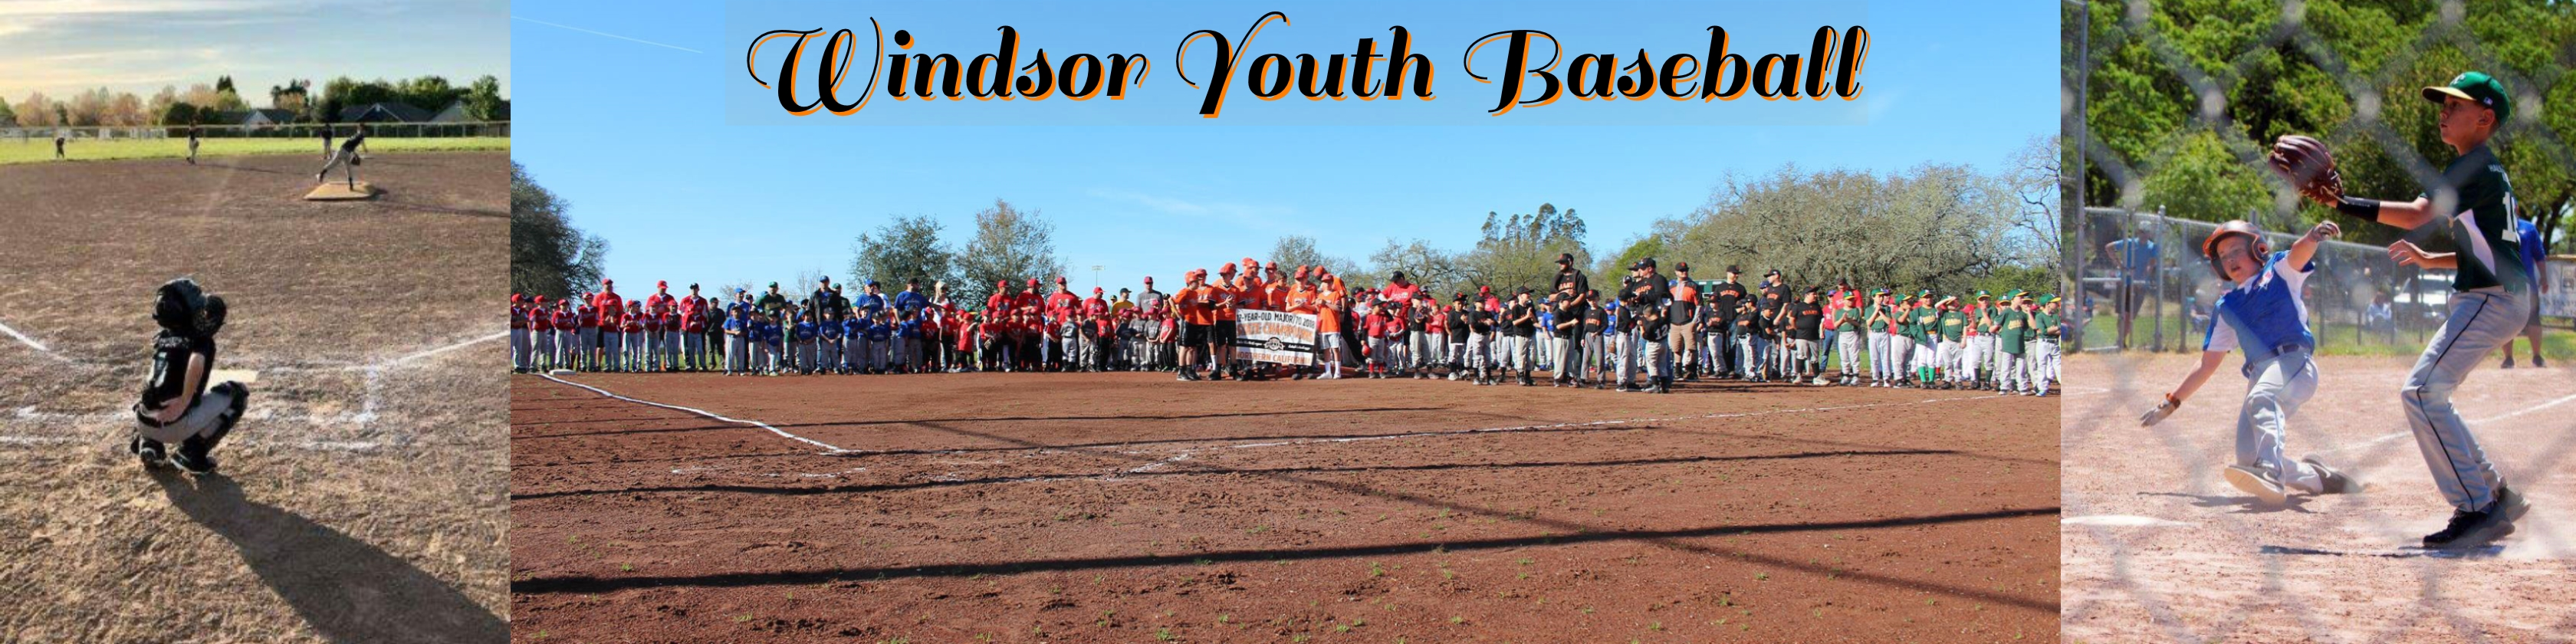 Windsor Cal Ripken Youth Baseball League, Baseball, Run, Field